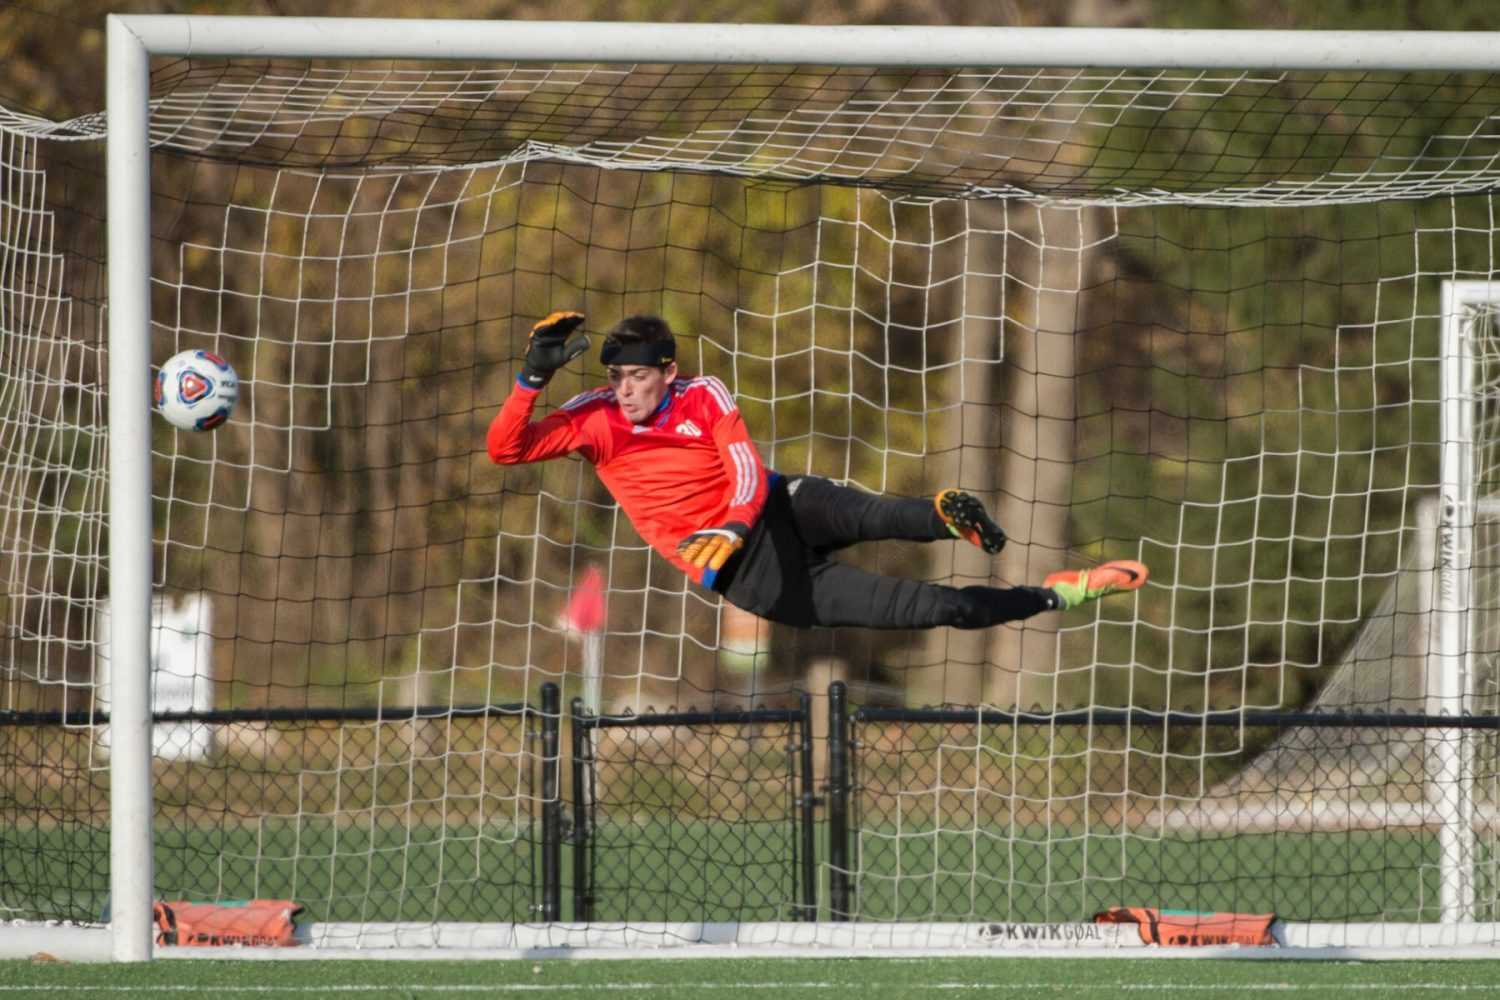 Early Goal Deflates Tigers In Semifinal Loss